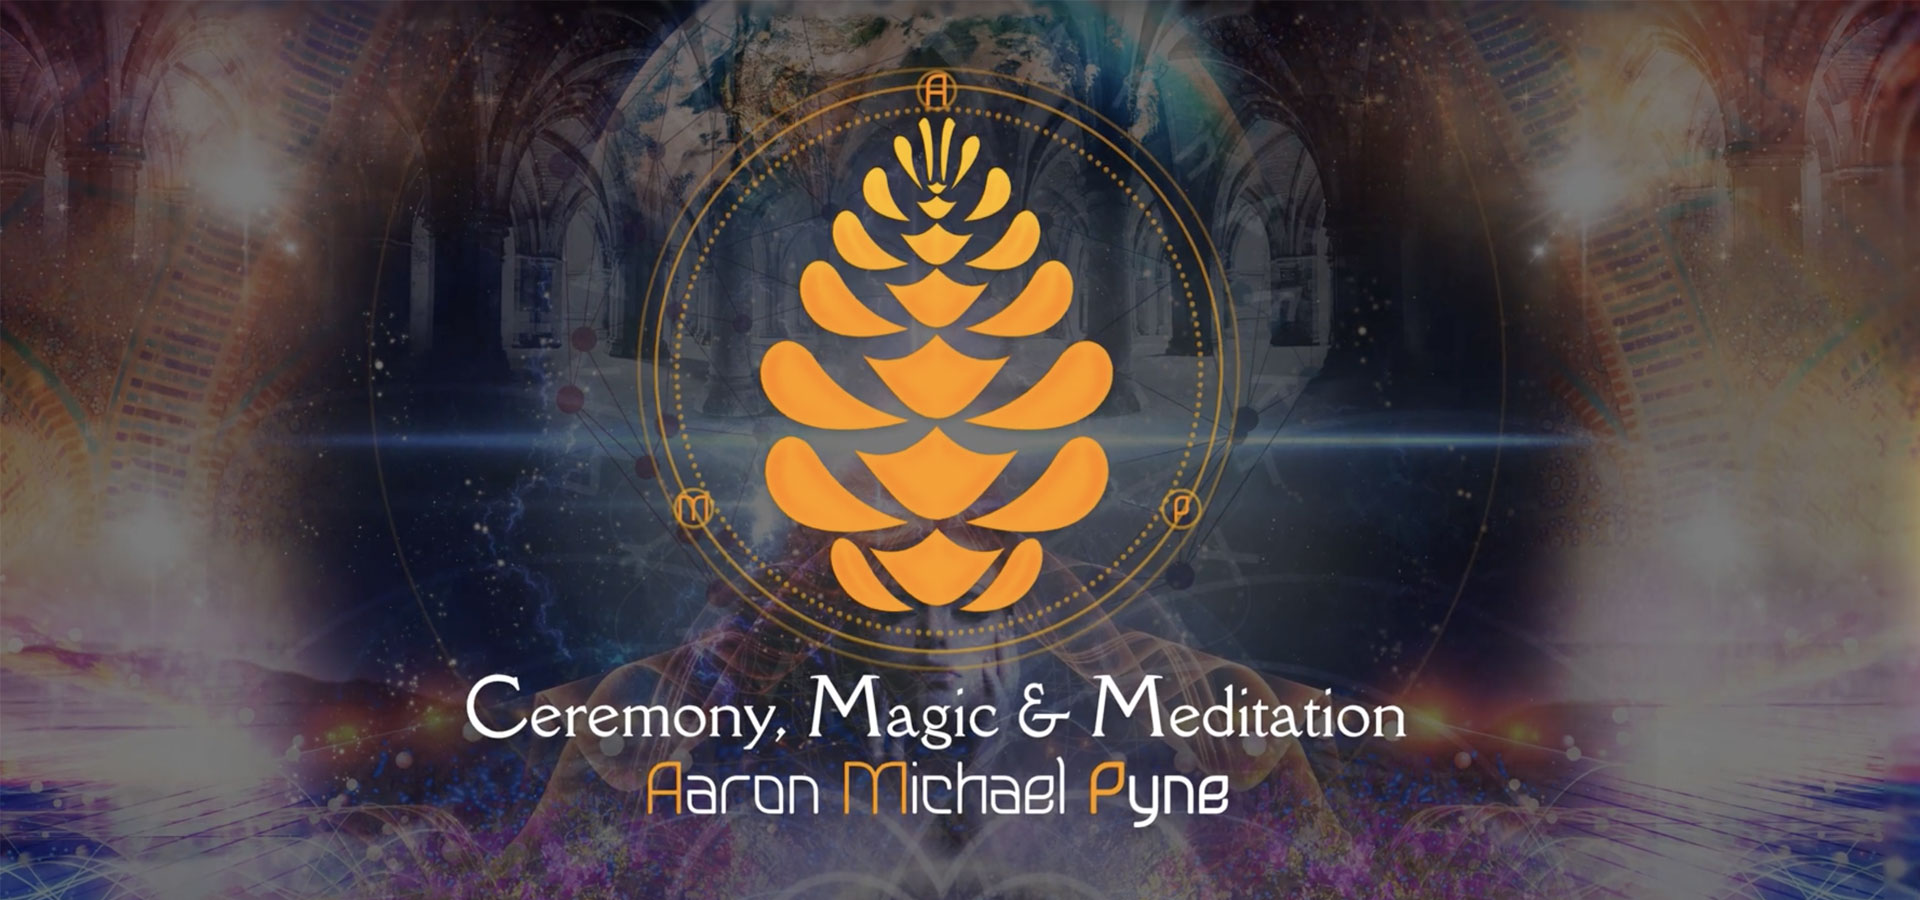 Ceremony Magic Meditation | Expand with Julius and Xpnsion Network